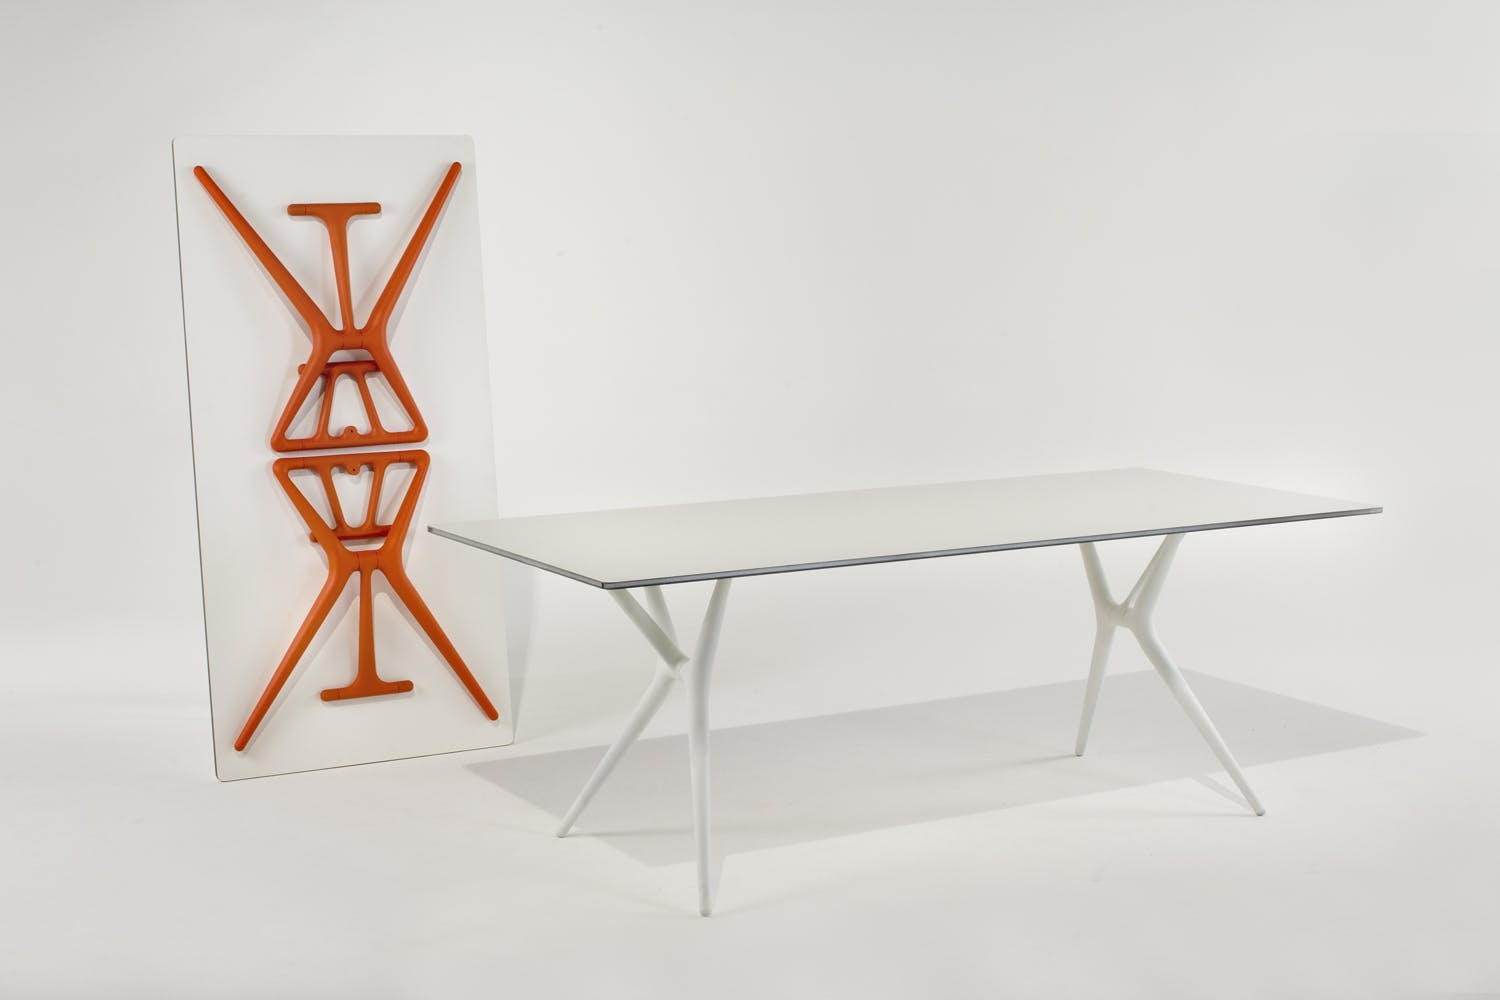 Spoon table small by antonio citterio with toan nguyen for for Bureau kartell